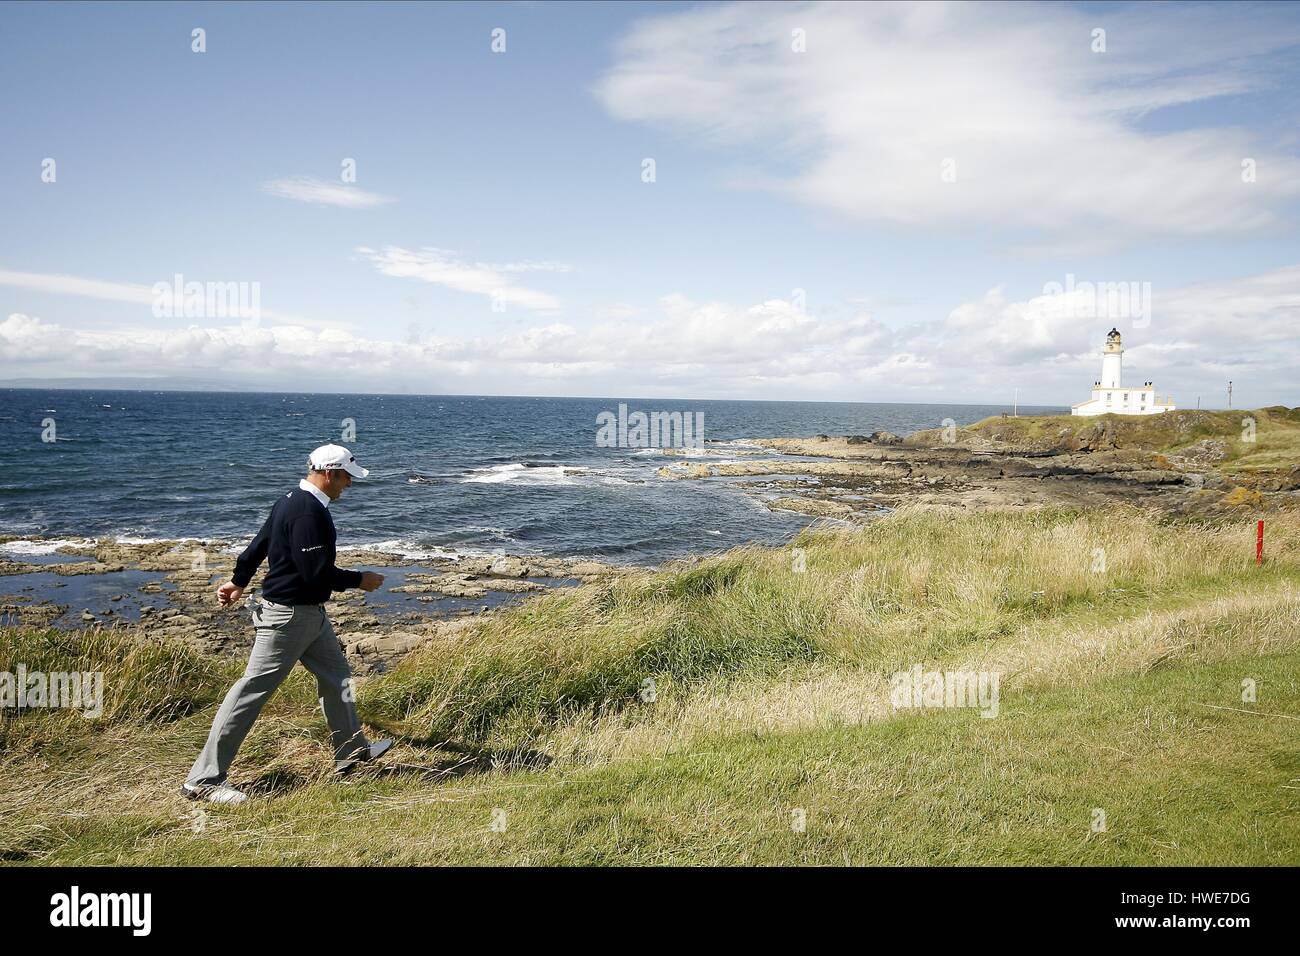 PAUL MCGINLEY ON THE 9TH HOLE THE OPEN TURNBERRY 2009 TURNBERRY AYRSHIRE SCOTLAND 19 July 2009 - Stock Image